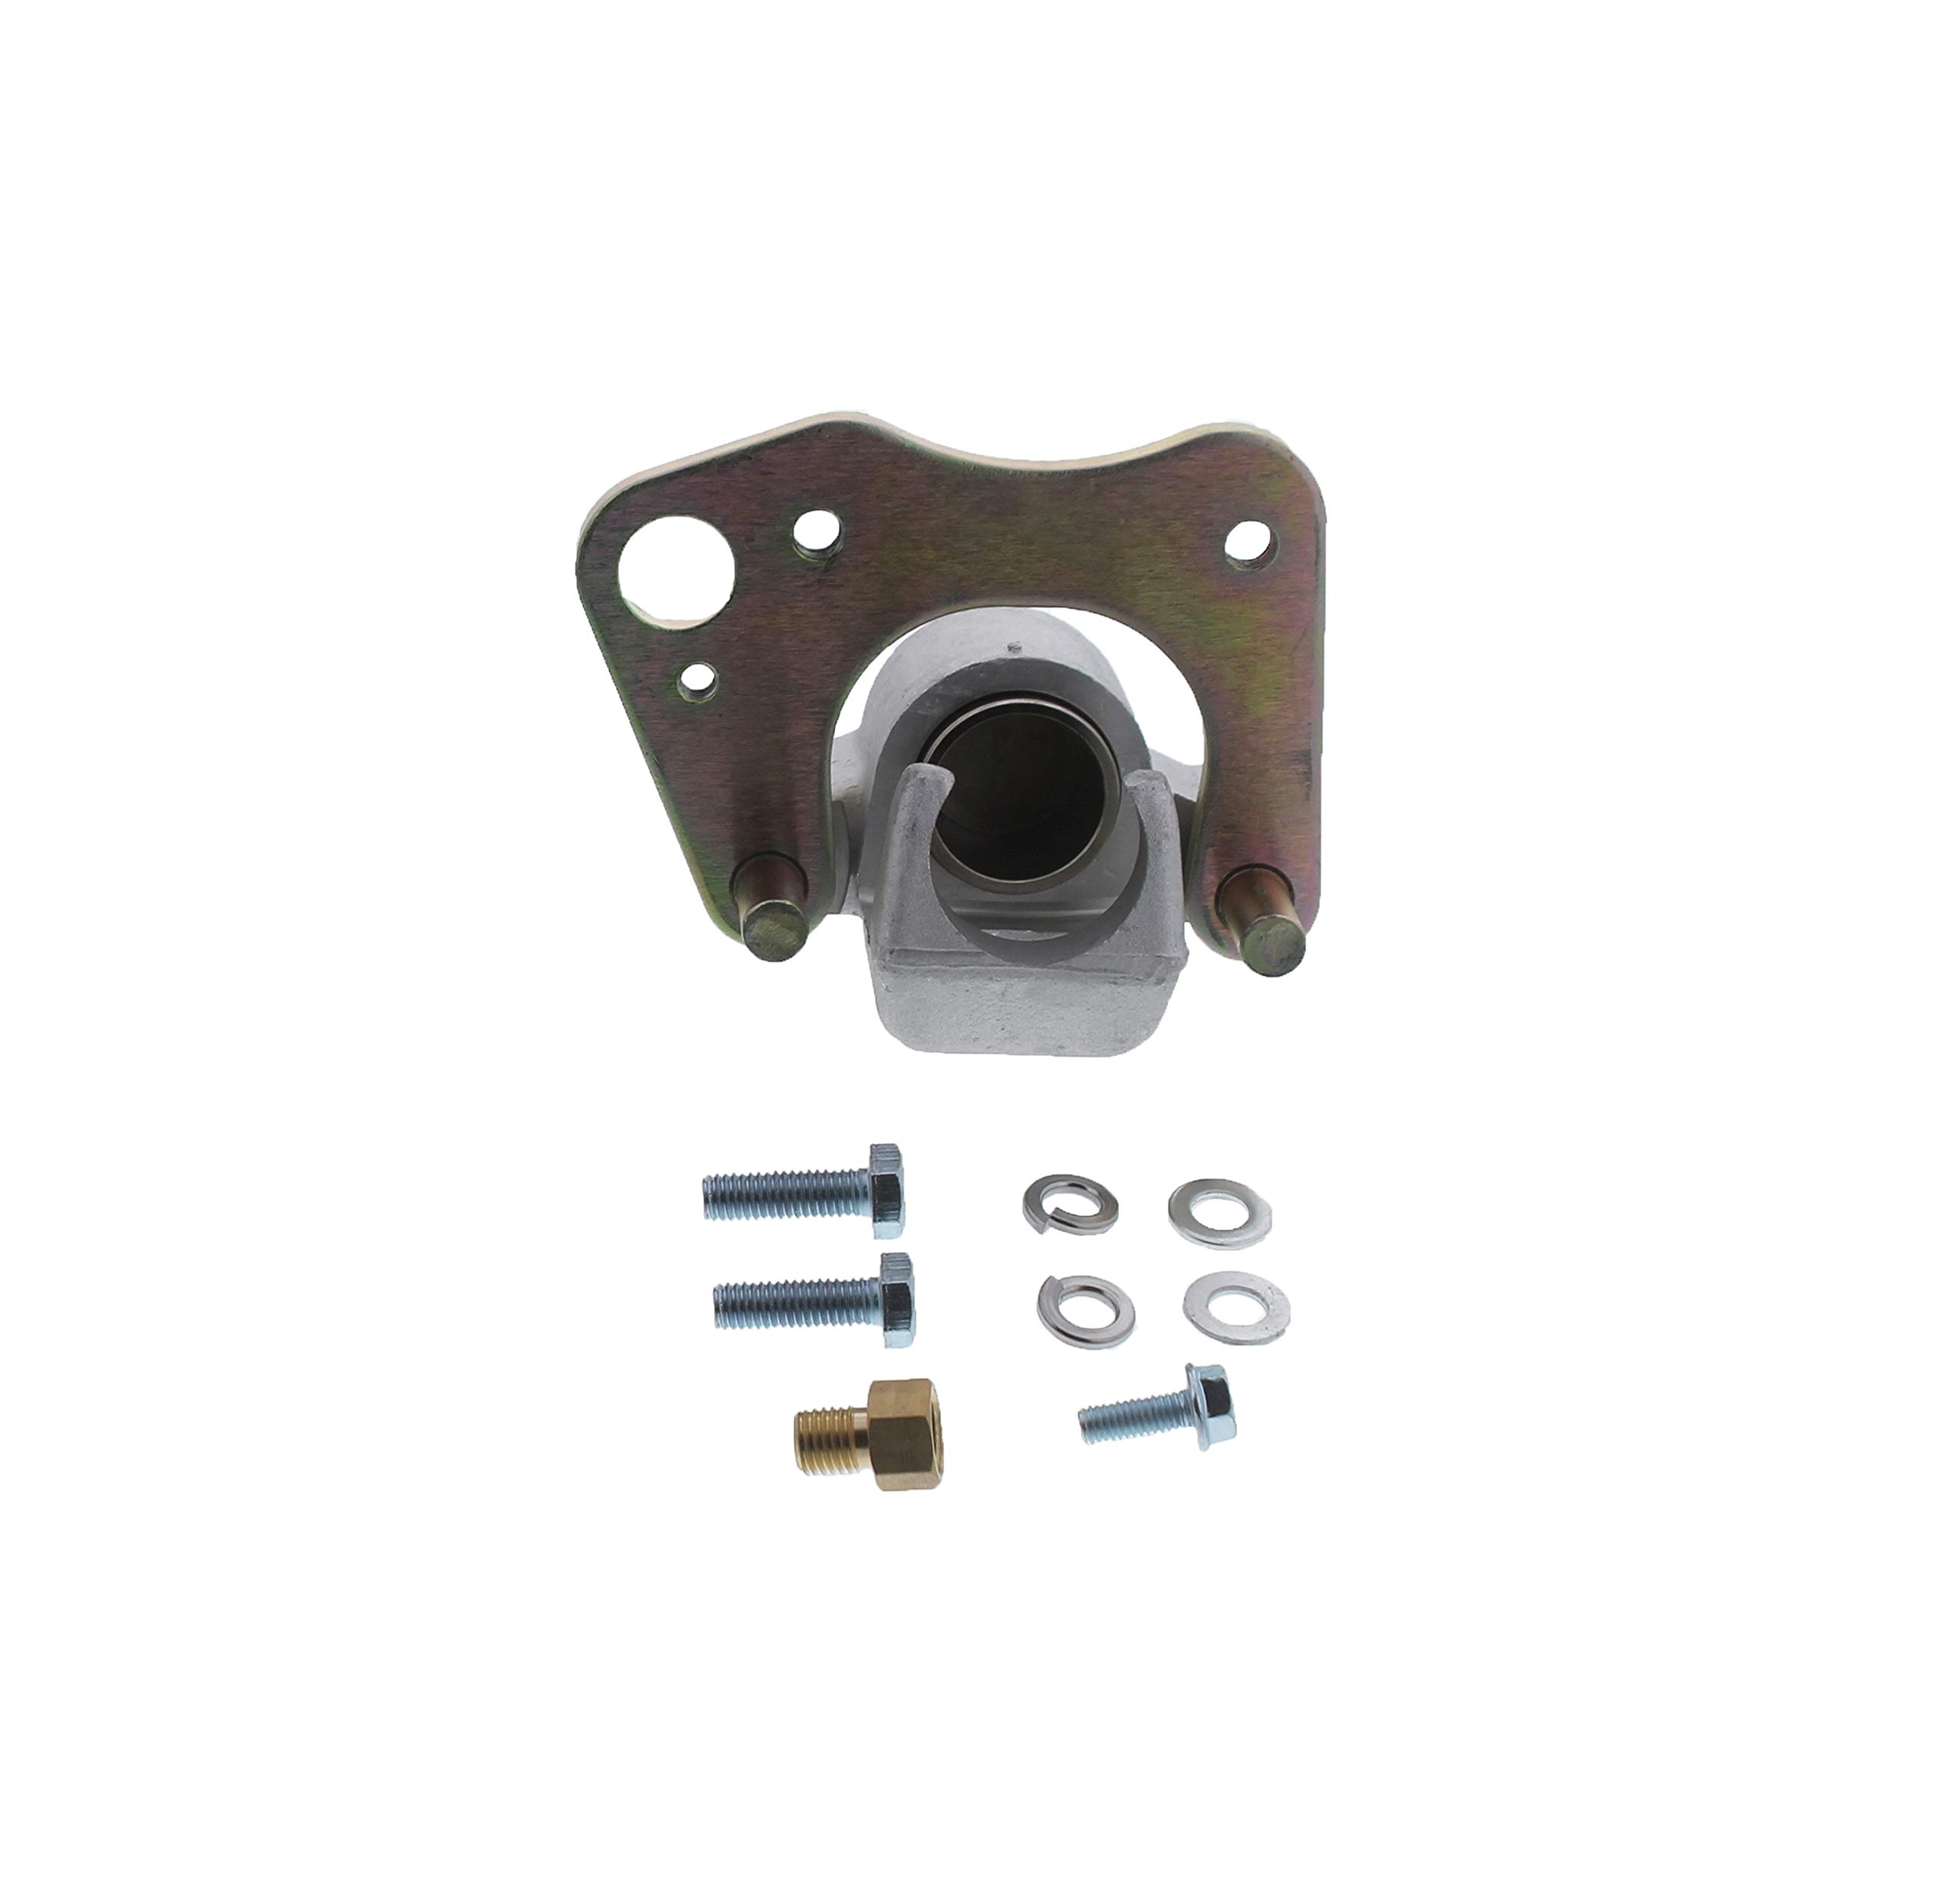 Brake Caliper for Polaris 400 L Sport 1996-1999 Front Right by Race-Driven